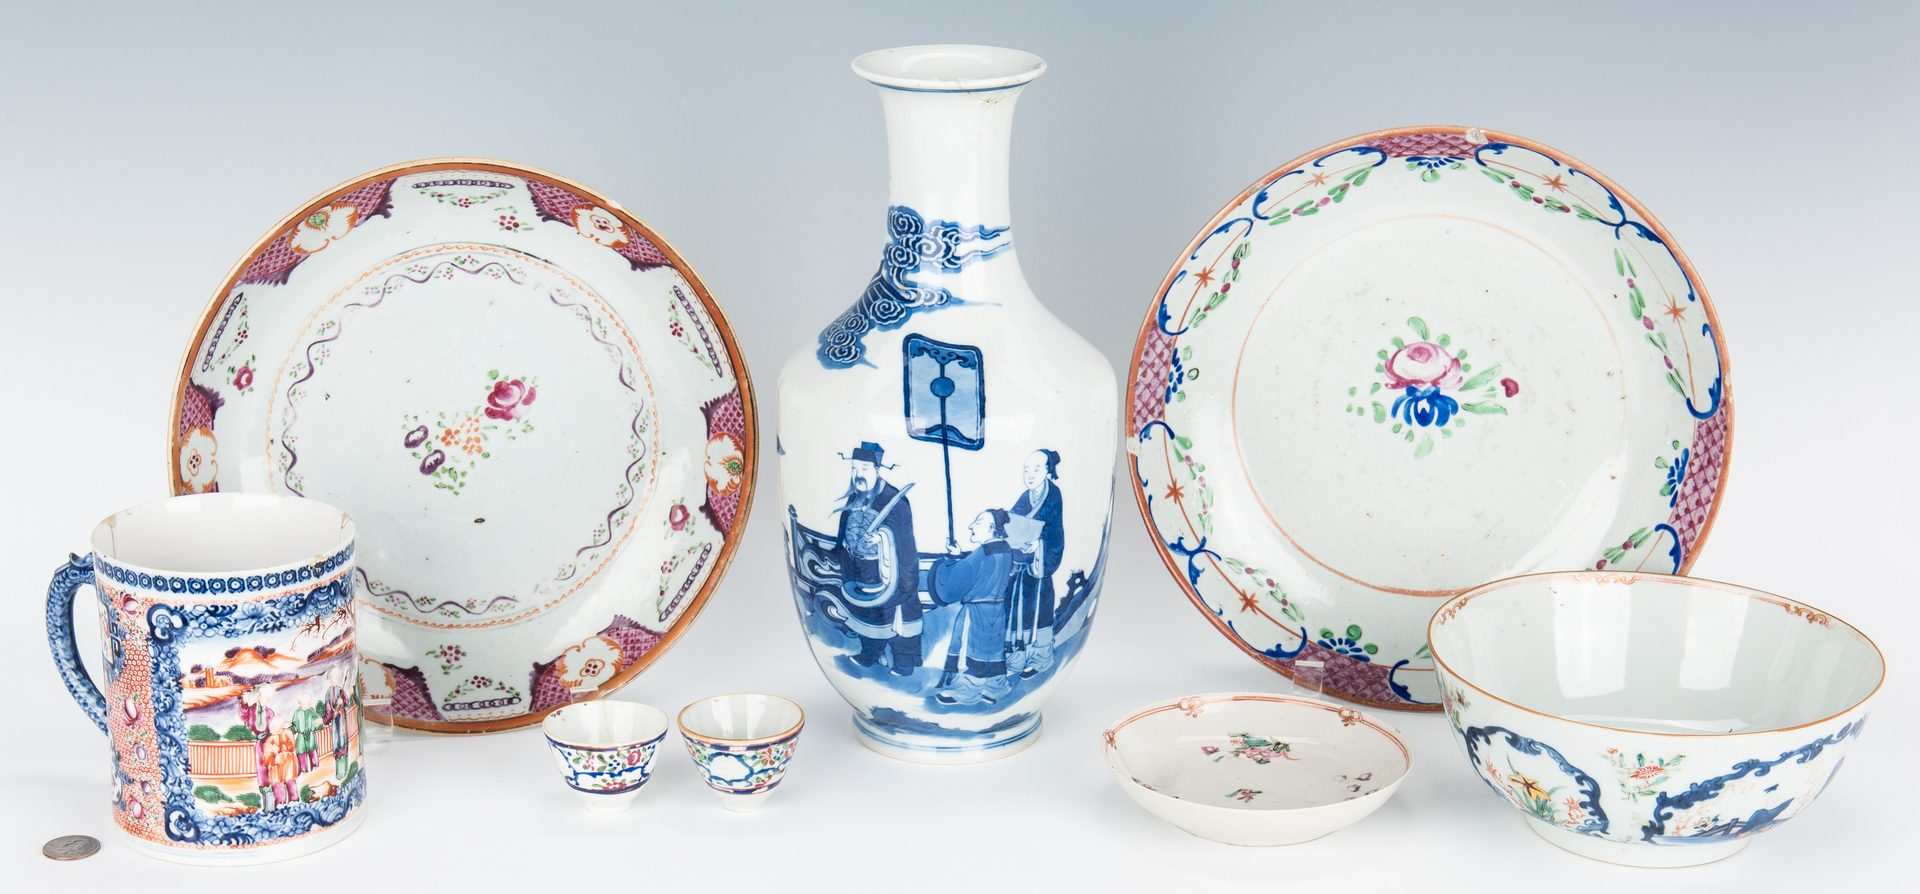 Lot 13: 8 Chinese Porcelain Items, including Export